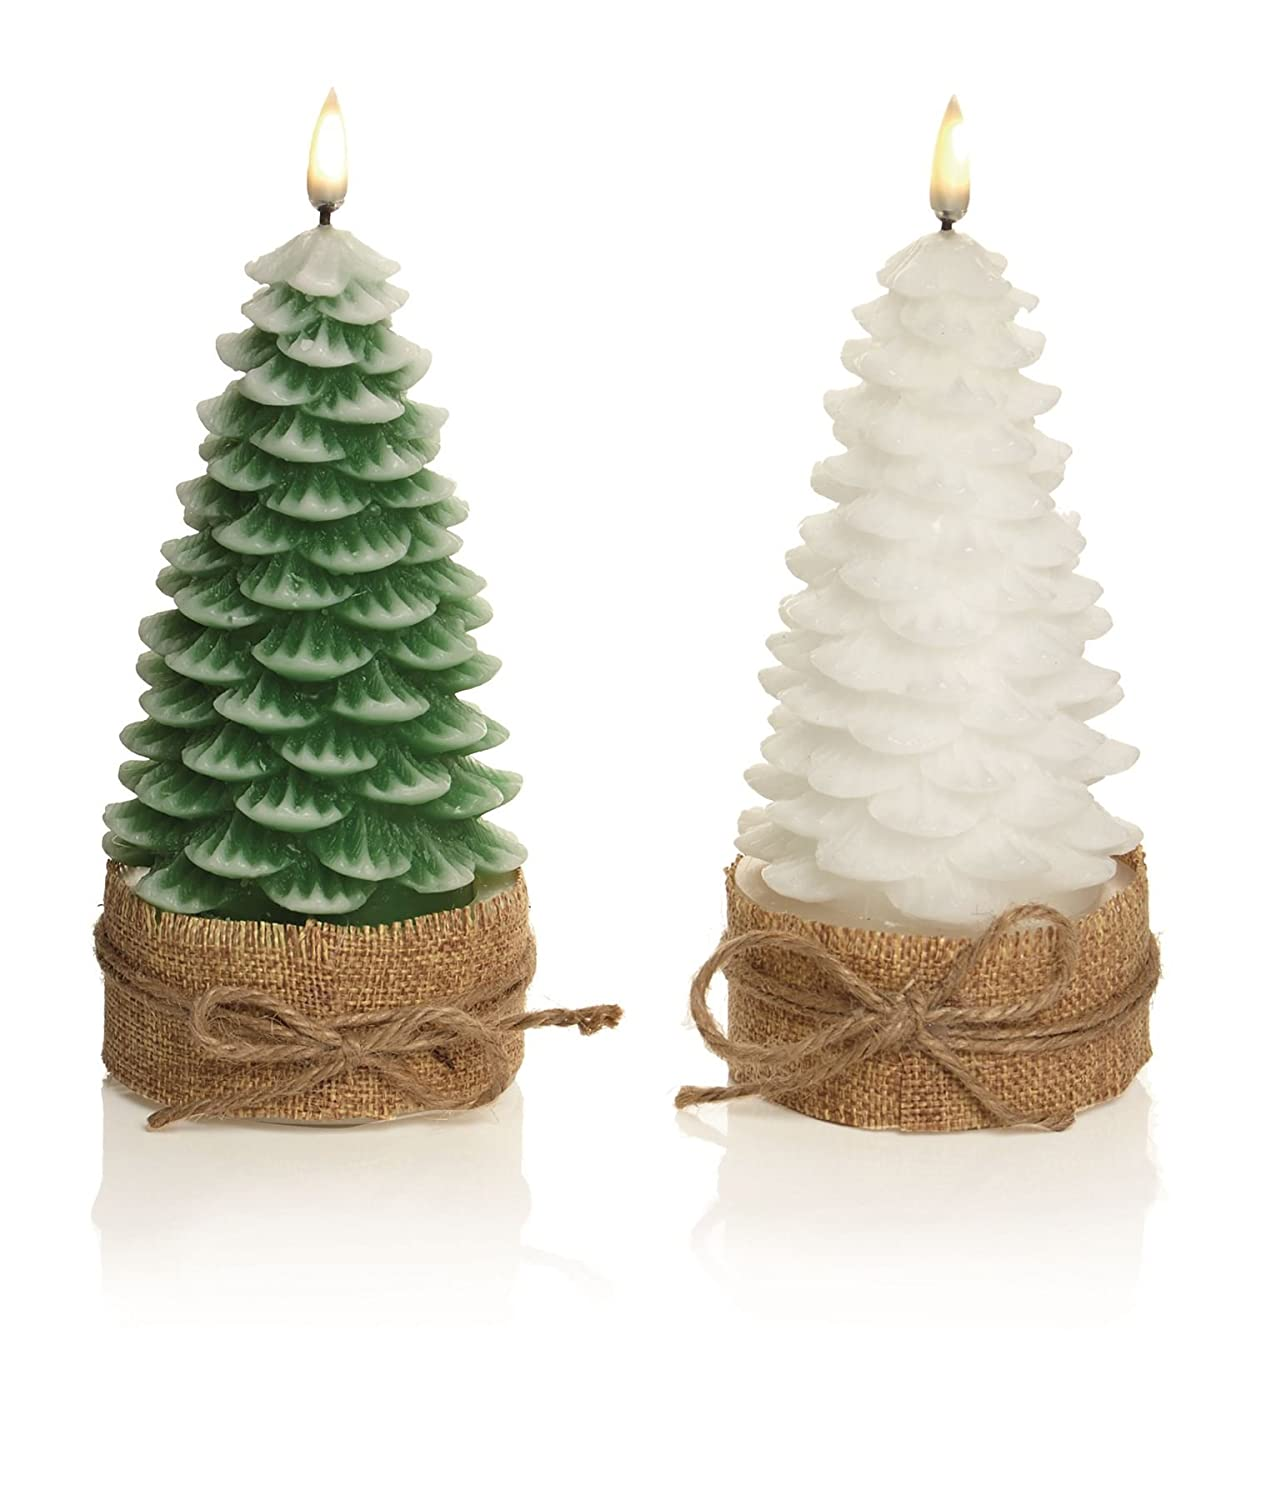 1 x 19cm FLICKERING FLAME Battery Operated REAL WAX Christmas TREE SHAPED Lovely CANDLE, 1 Colour selected randomly! Premier Decorations